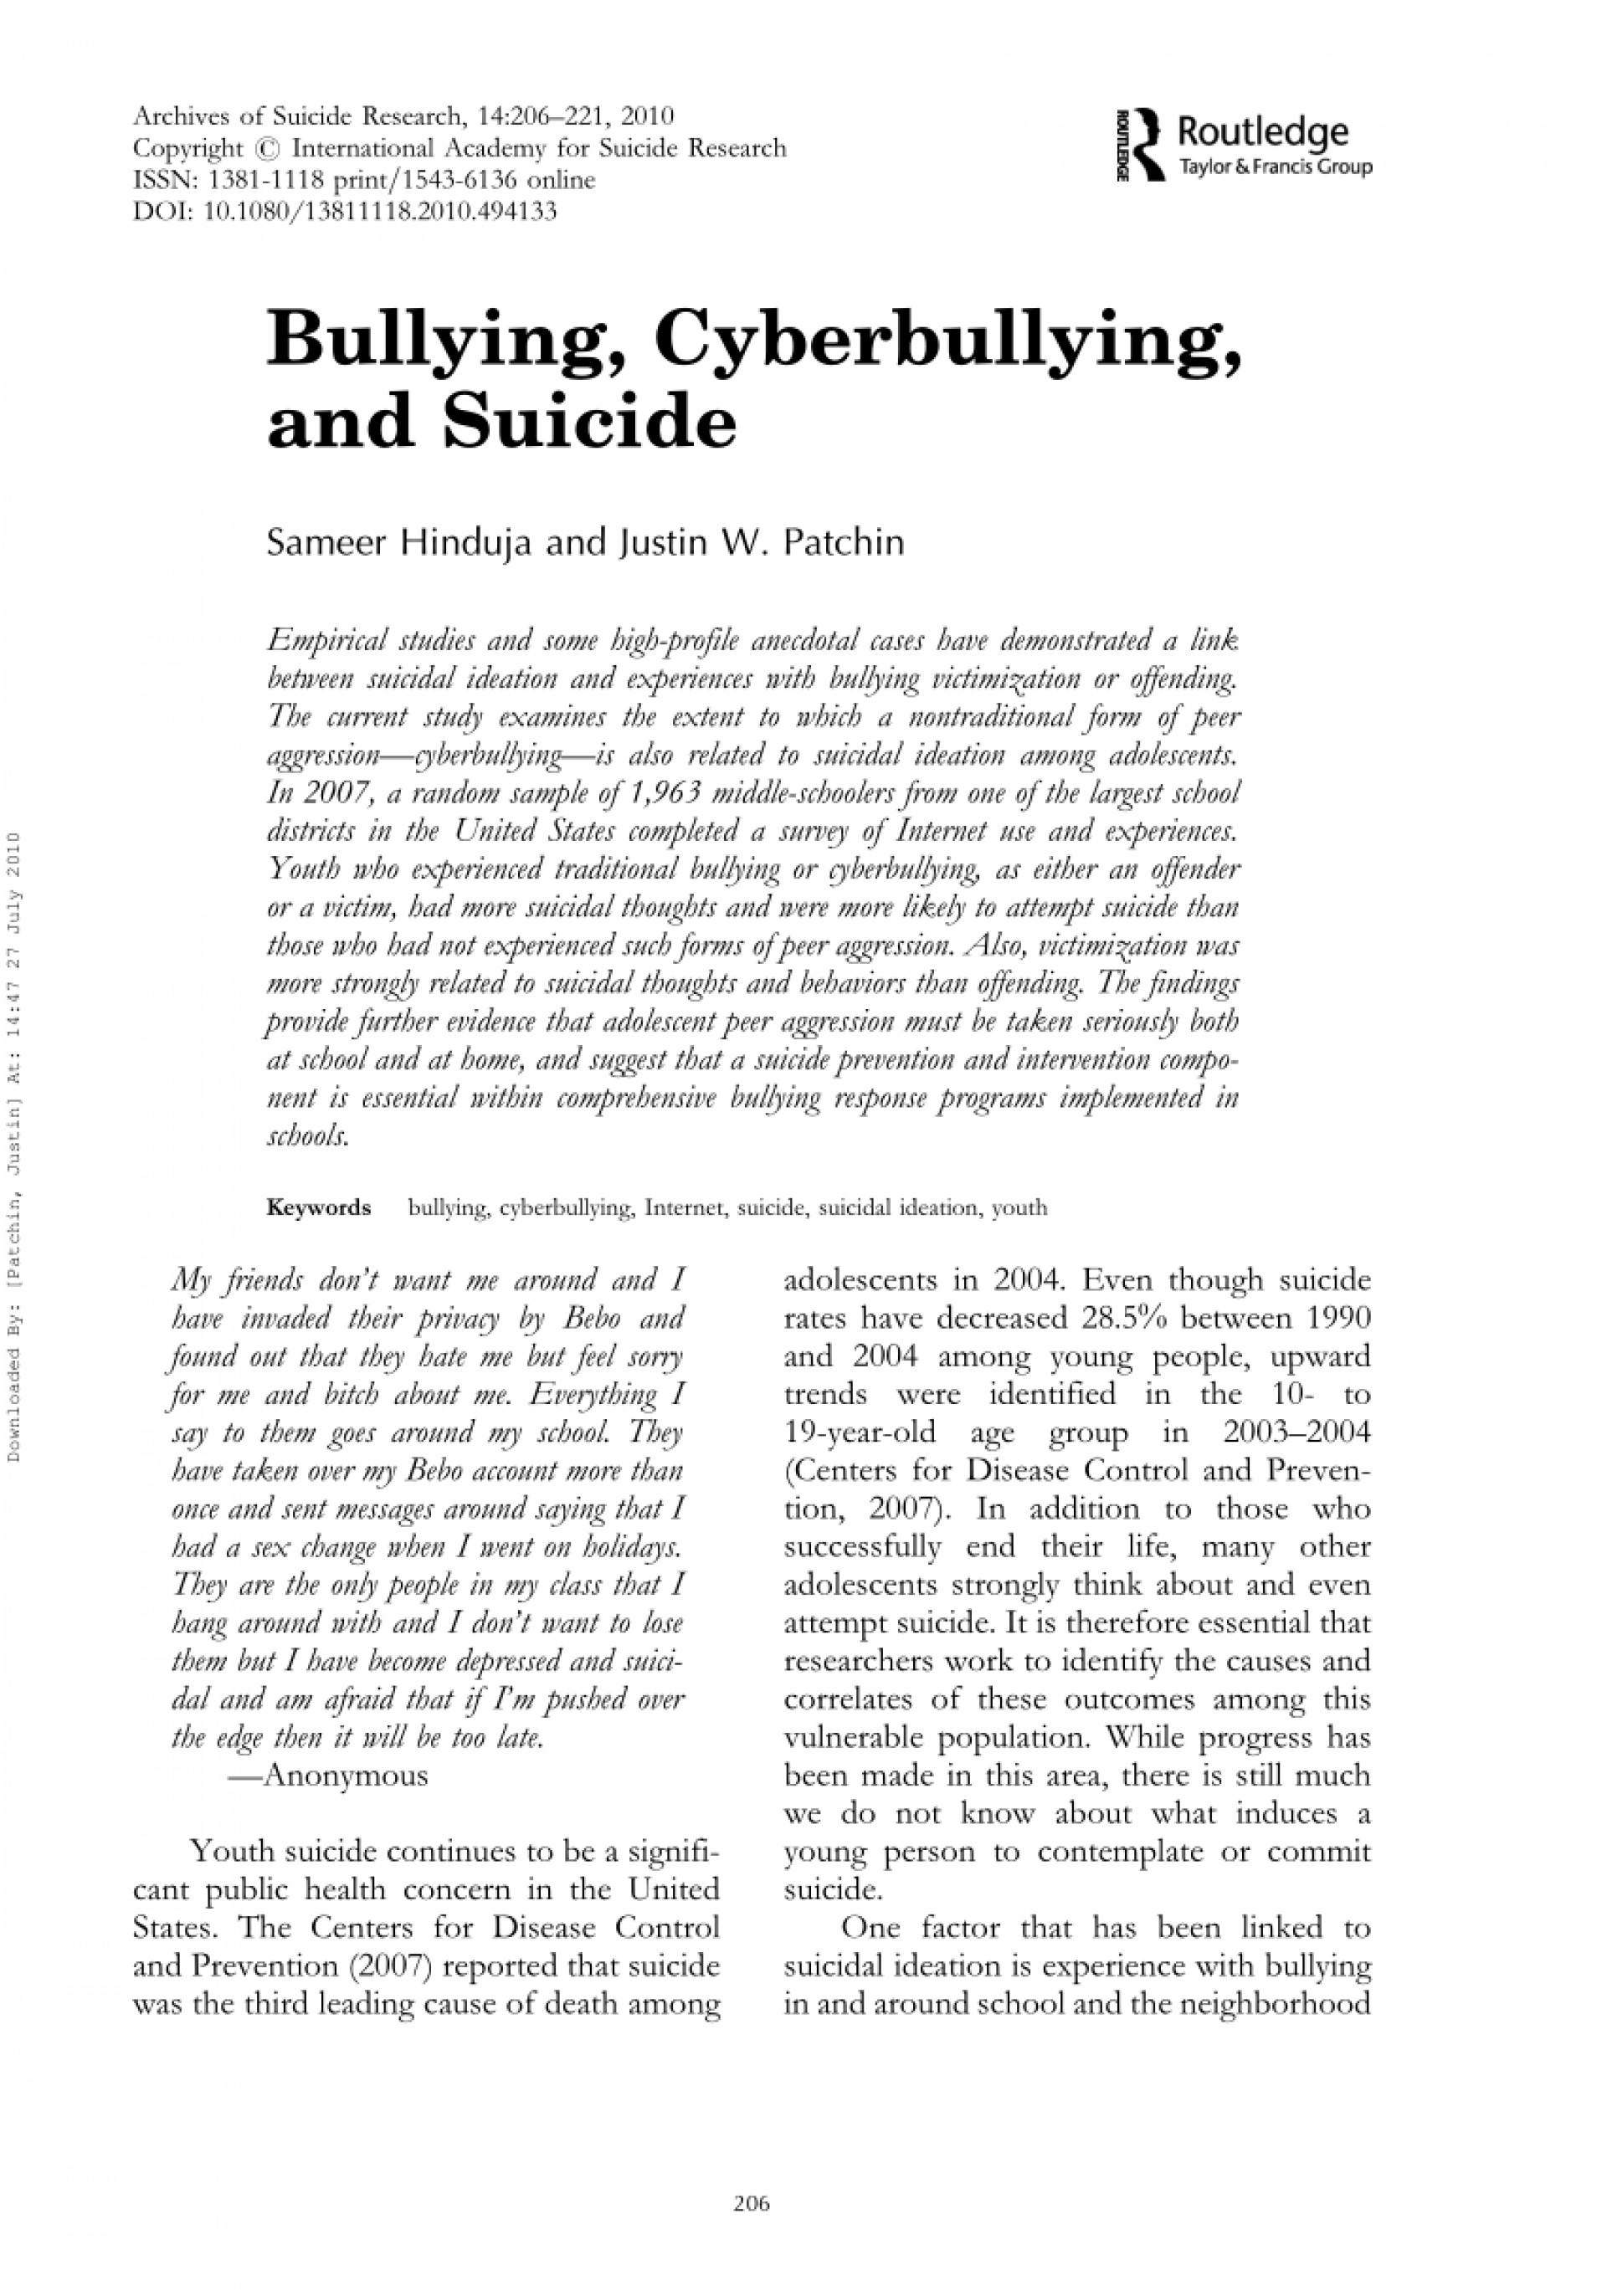 002 Research Paper Cyberbullying Articles Wondrous About Chapter 1 Studies On The Effects Of In Philippines Pdf 1920